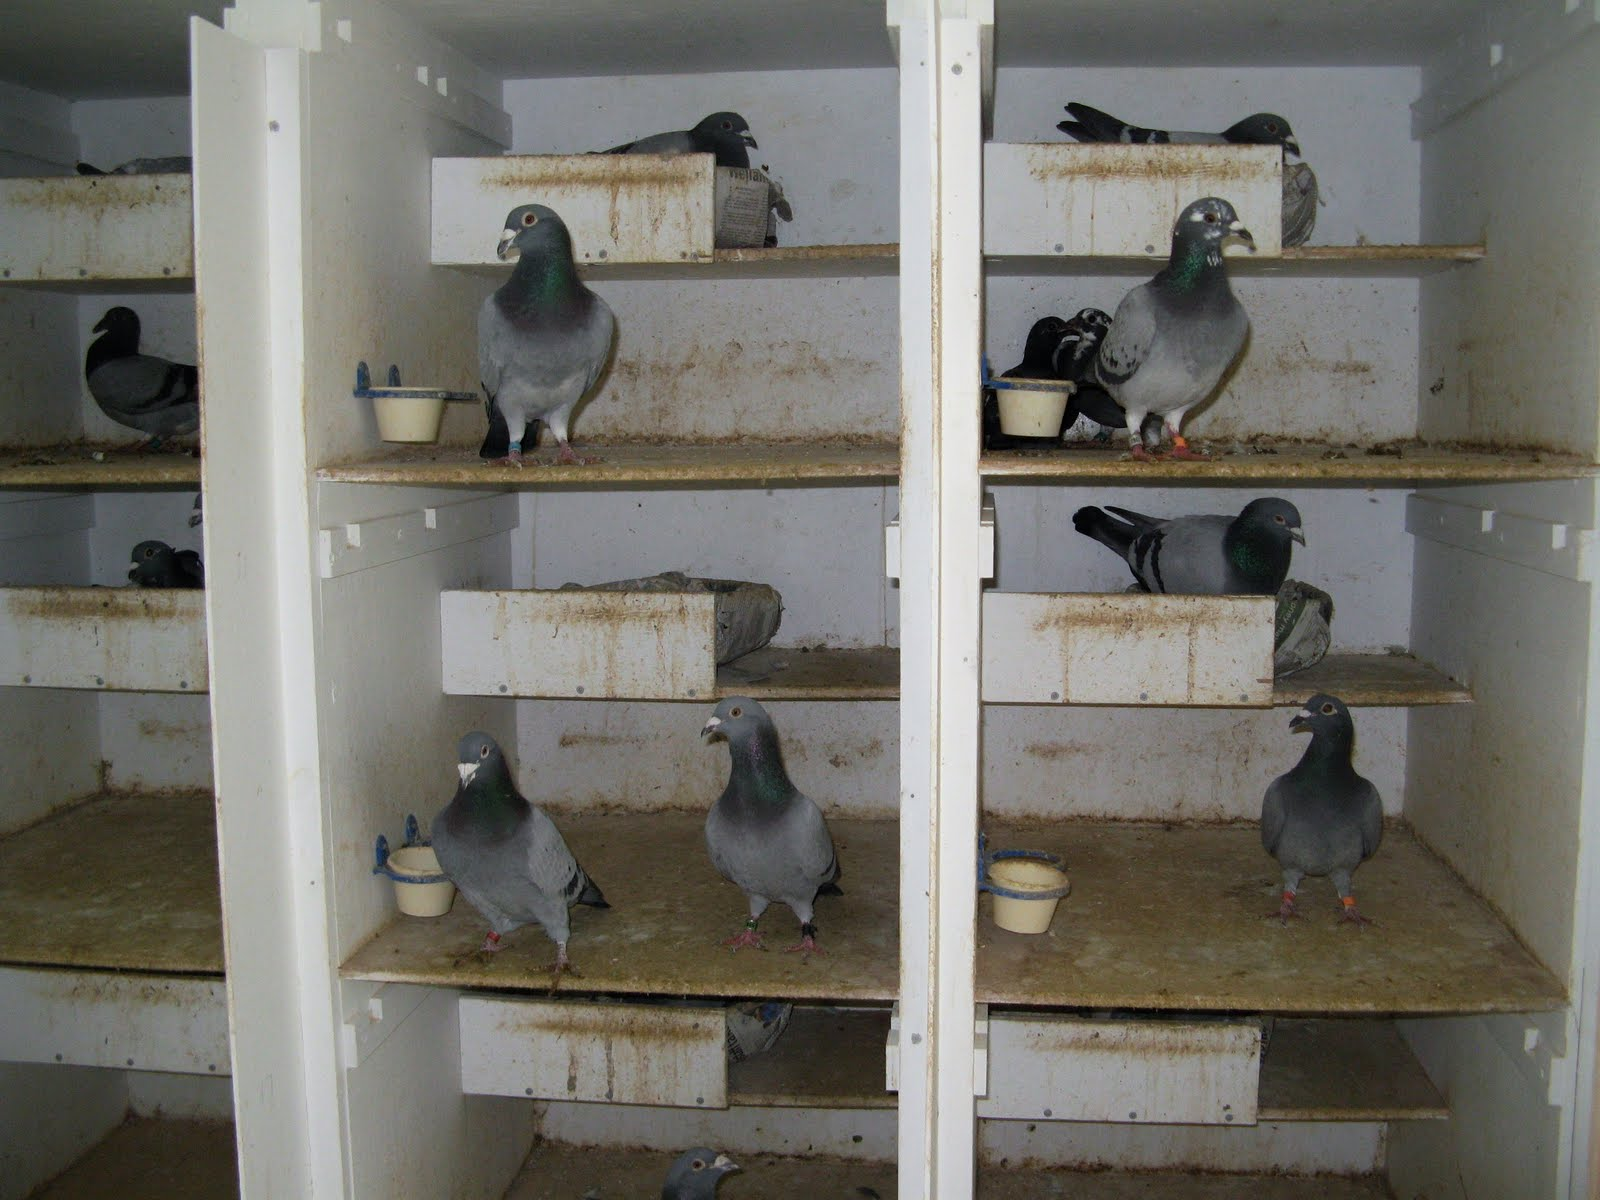 Pigeon Nest Boxes and Perches http://pigeonbeginner.blogspot.com/